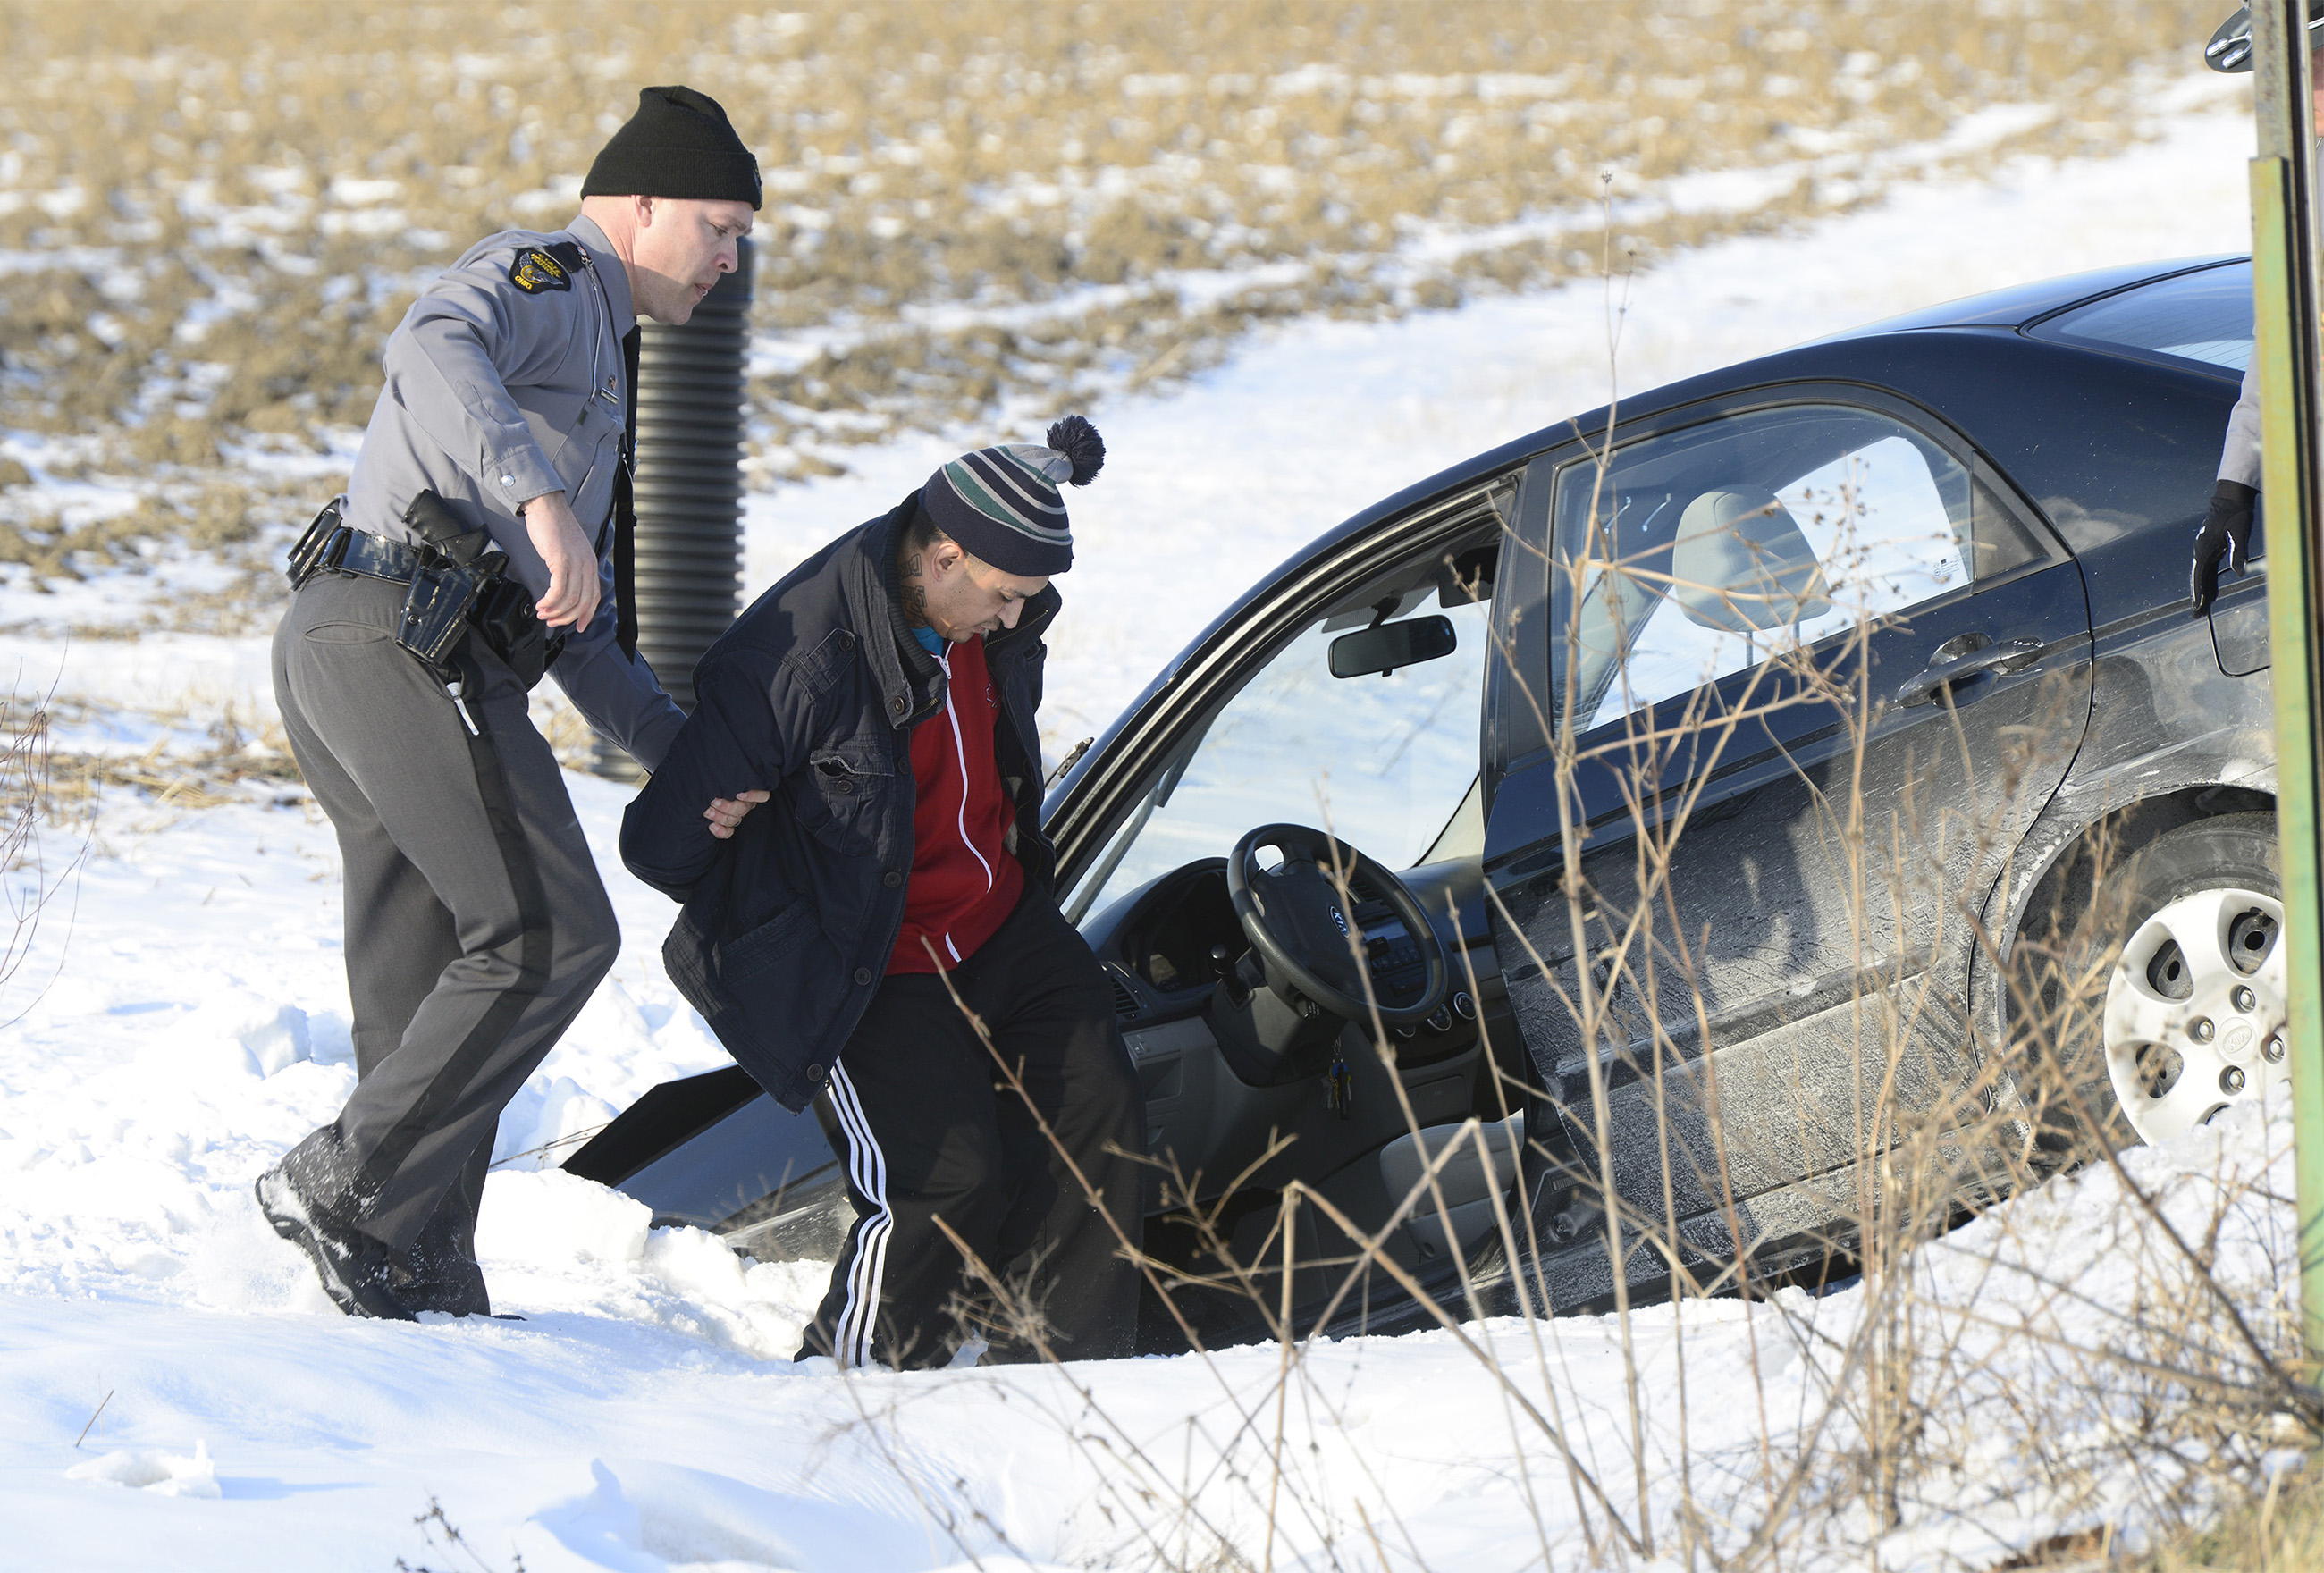 Ismael Gonzalez, 38, of Findlay is arrested on a felony warrant after leading police on a high-speed chase across three counties, ending with parts flying off the car and a crash into the ditch at the corner of County Roads 153 and 106 in Lindsey on Tuesday afternoon.